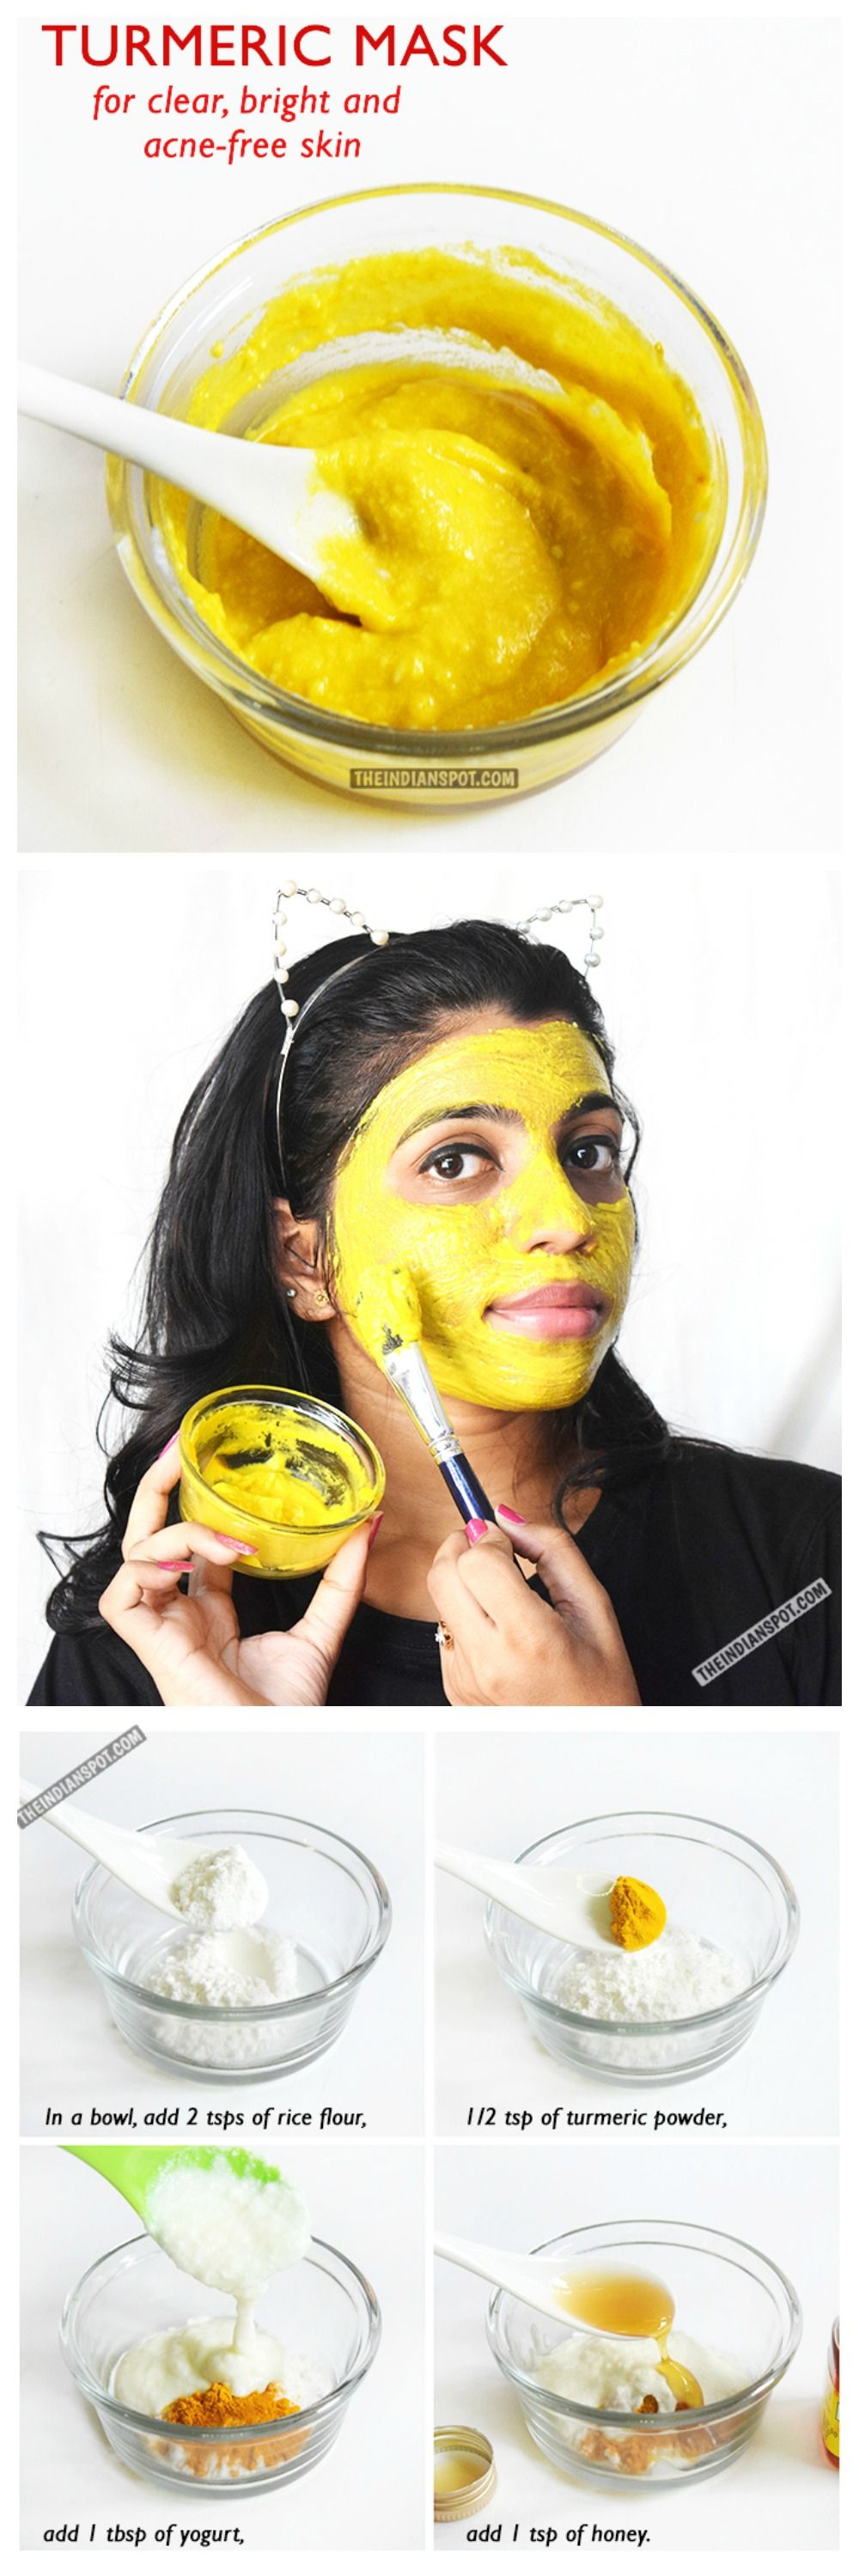 Turmeric mask for clear bright and acne free skin beauty tips diy tumeric mask for clear bright acne free skin do it yourself beauty solutioingenieria Choice Image